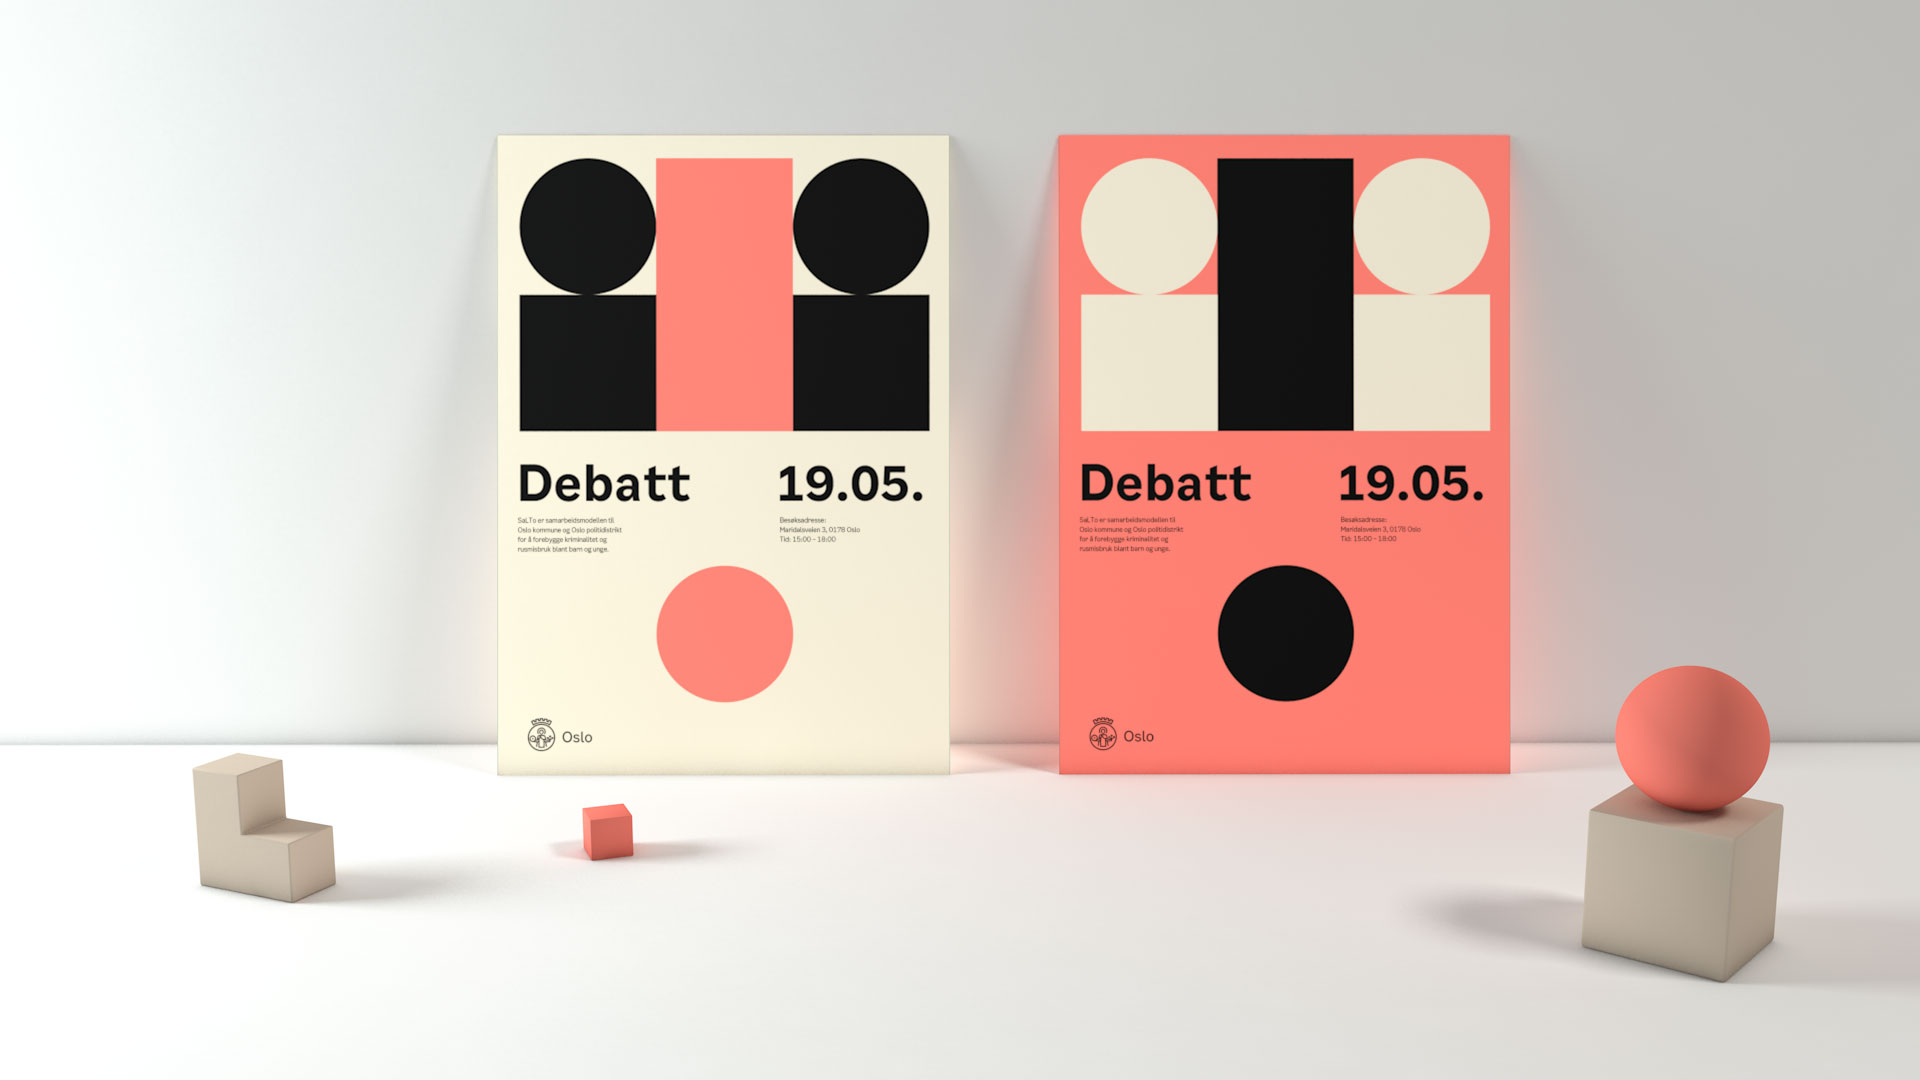 Oslo's new identity is inspired by shapes of the city